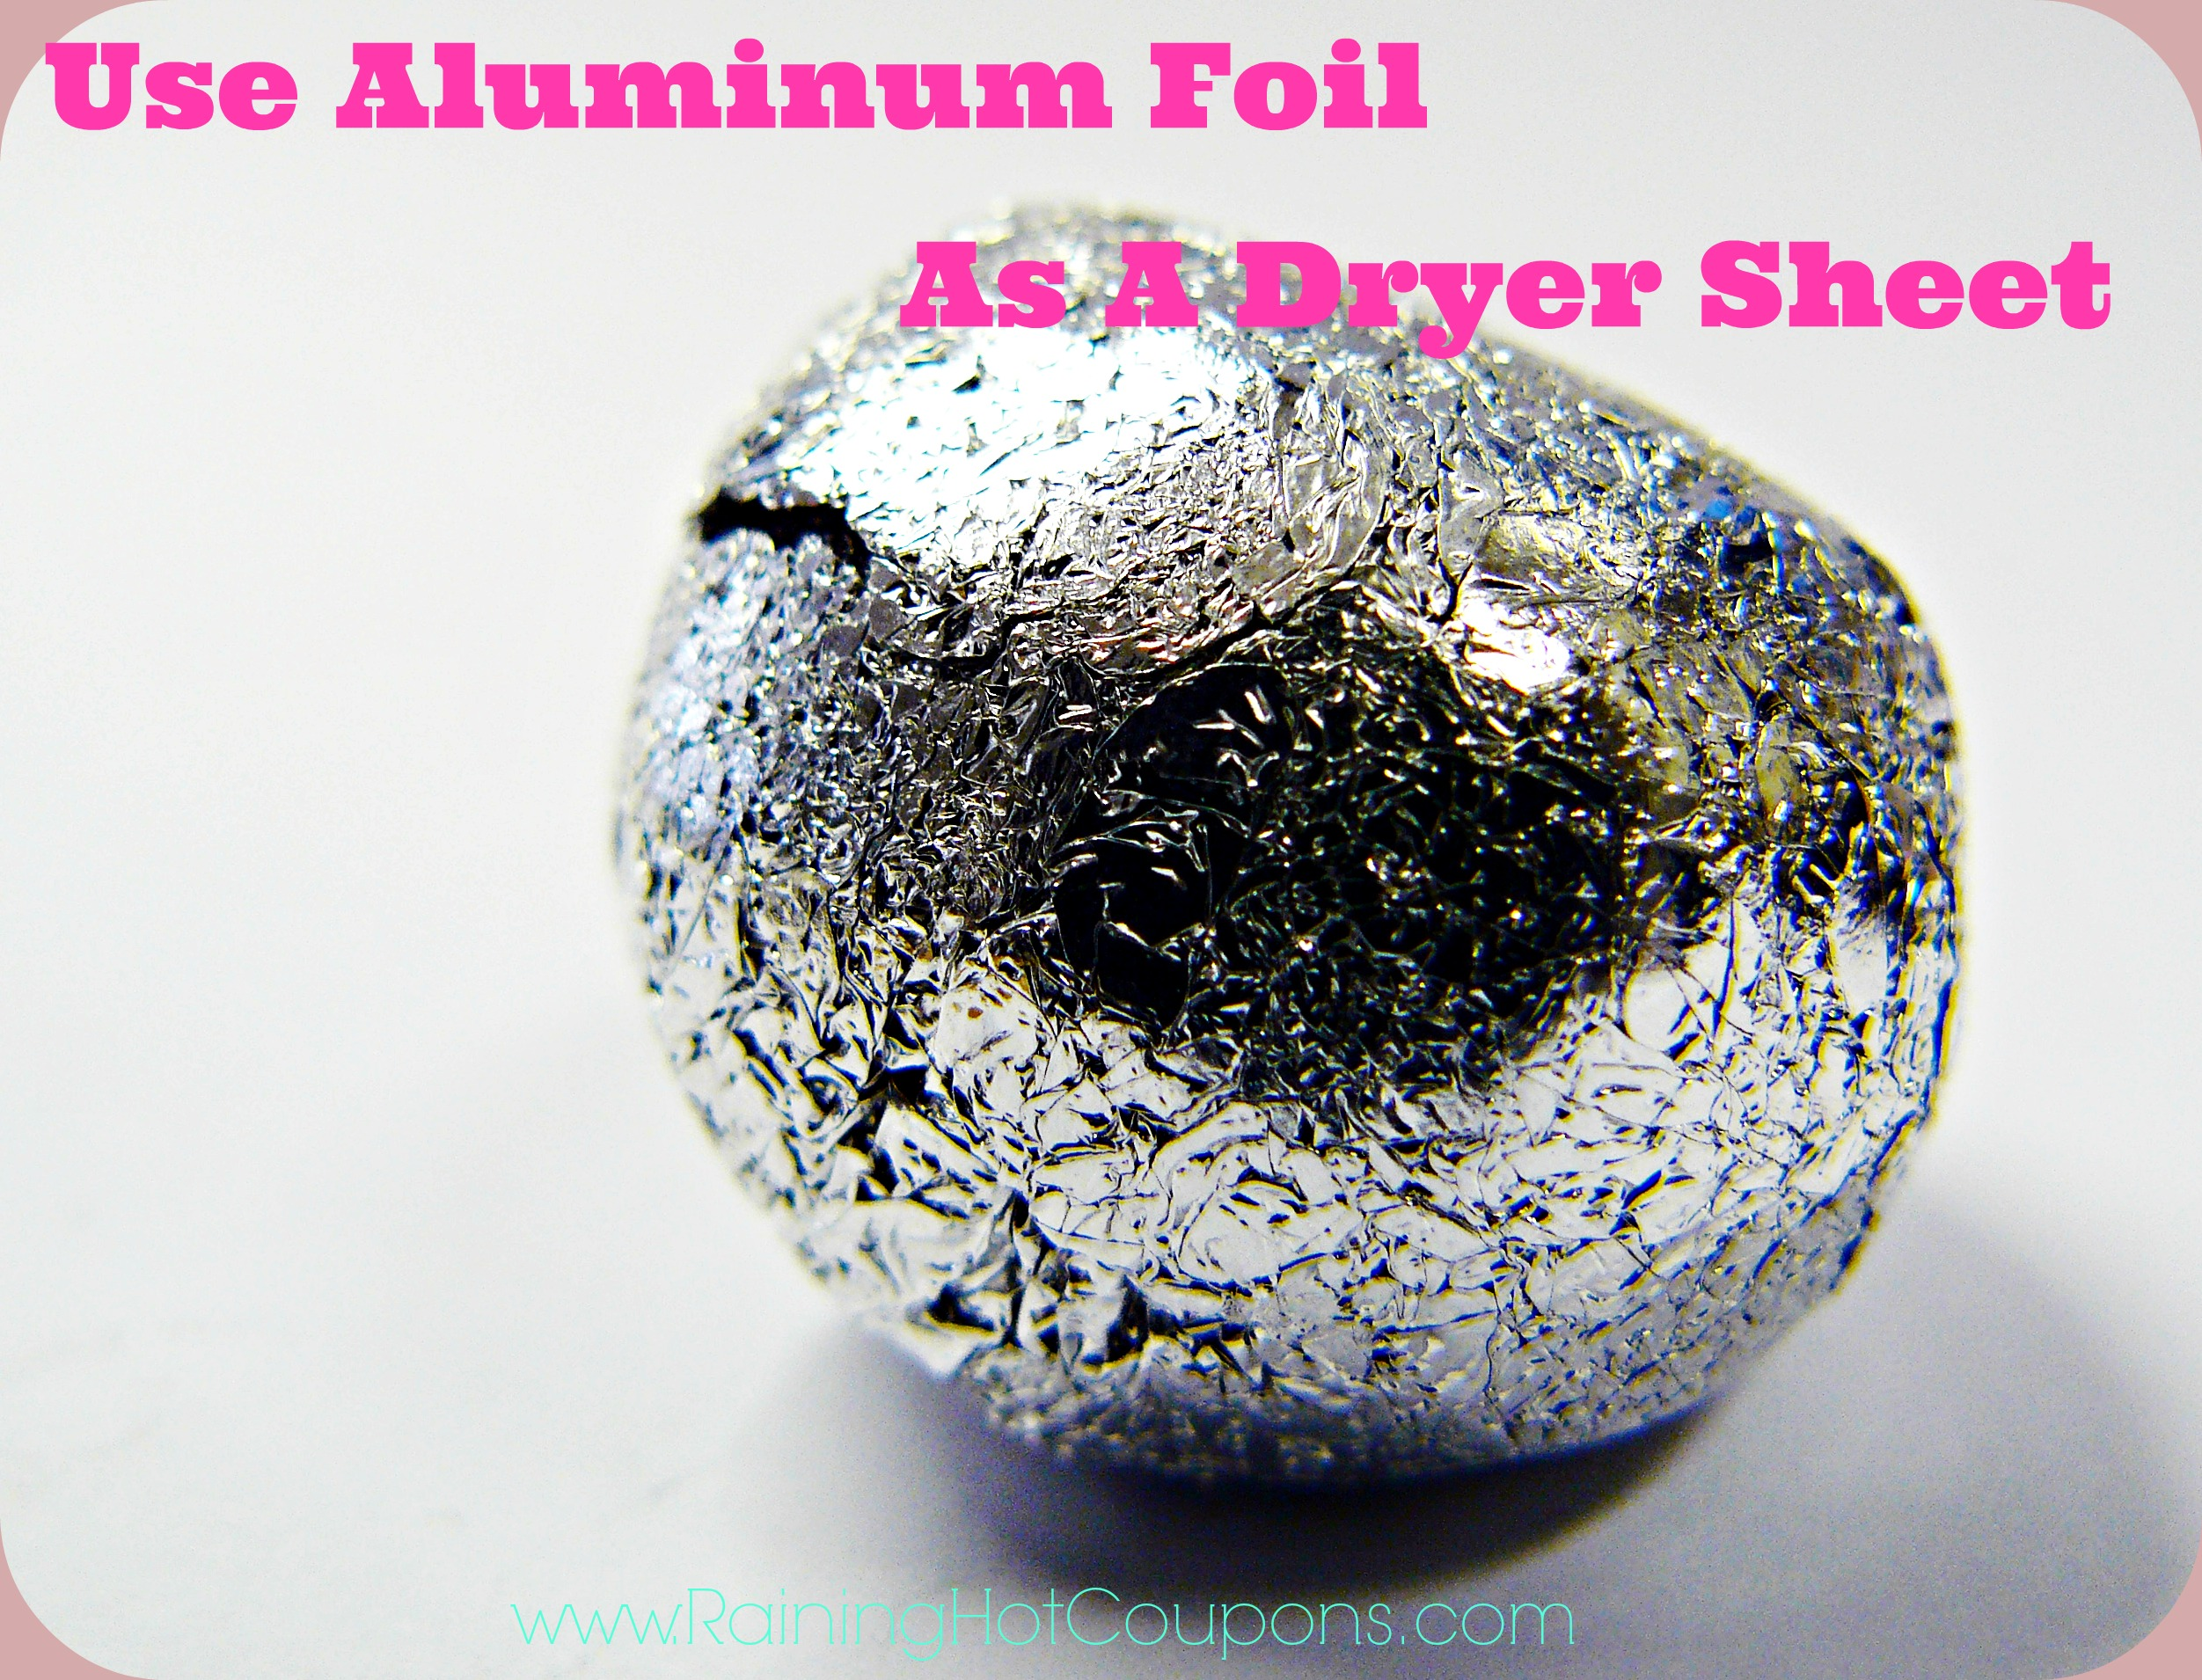 """Apr 01, · So after my long Google quest, I have now started using foil wrapped tennis balls in lieu of dryer sheets, AND IT WORKS! My first attempt at wrapping the balls with foil, I didn't use enough. One go-round in the dryer with a load of laundry would peel off some of the foil where there was a """"seam"""" on the ball."""